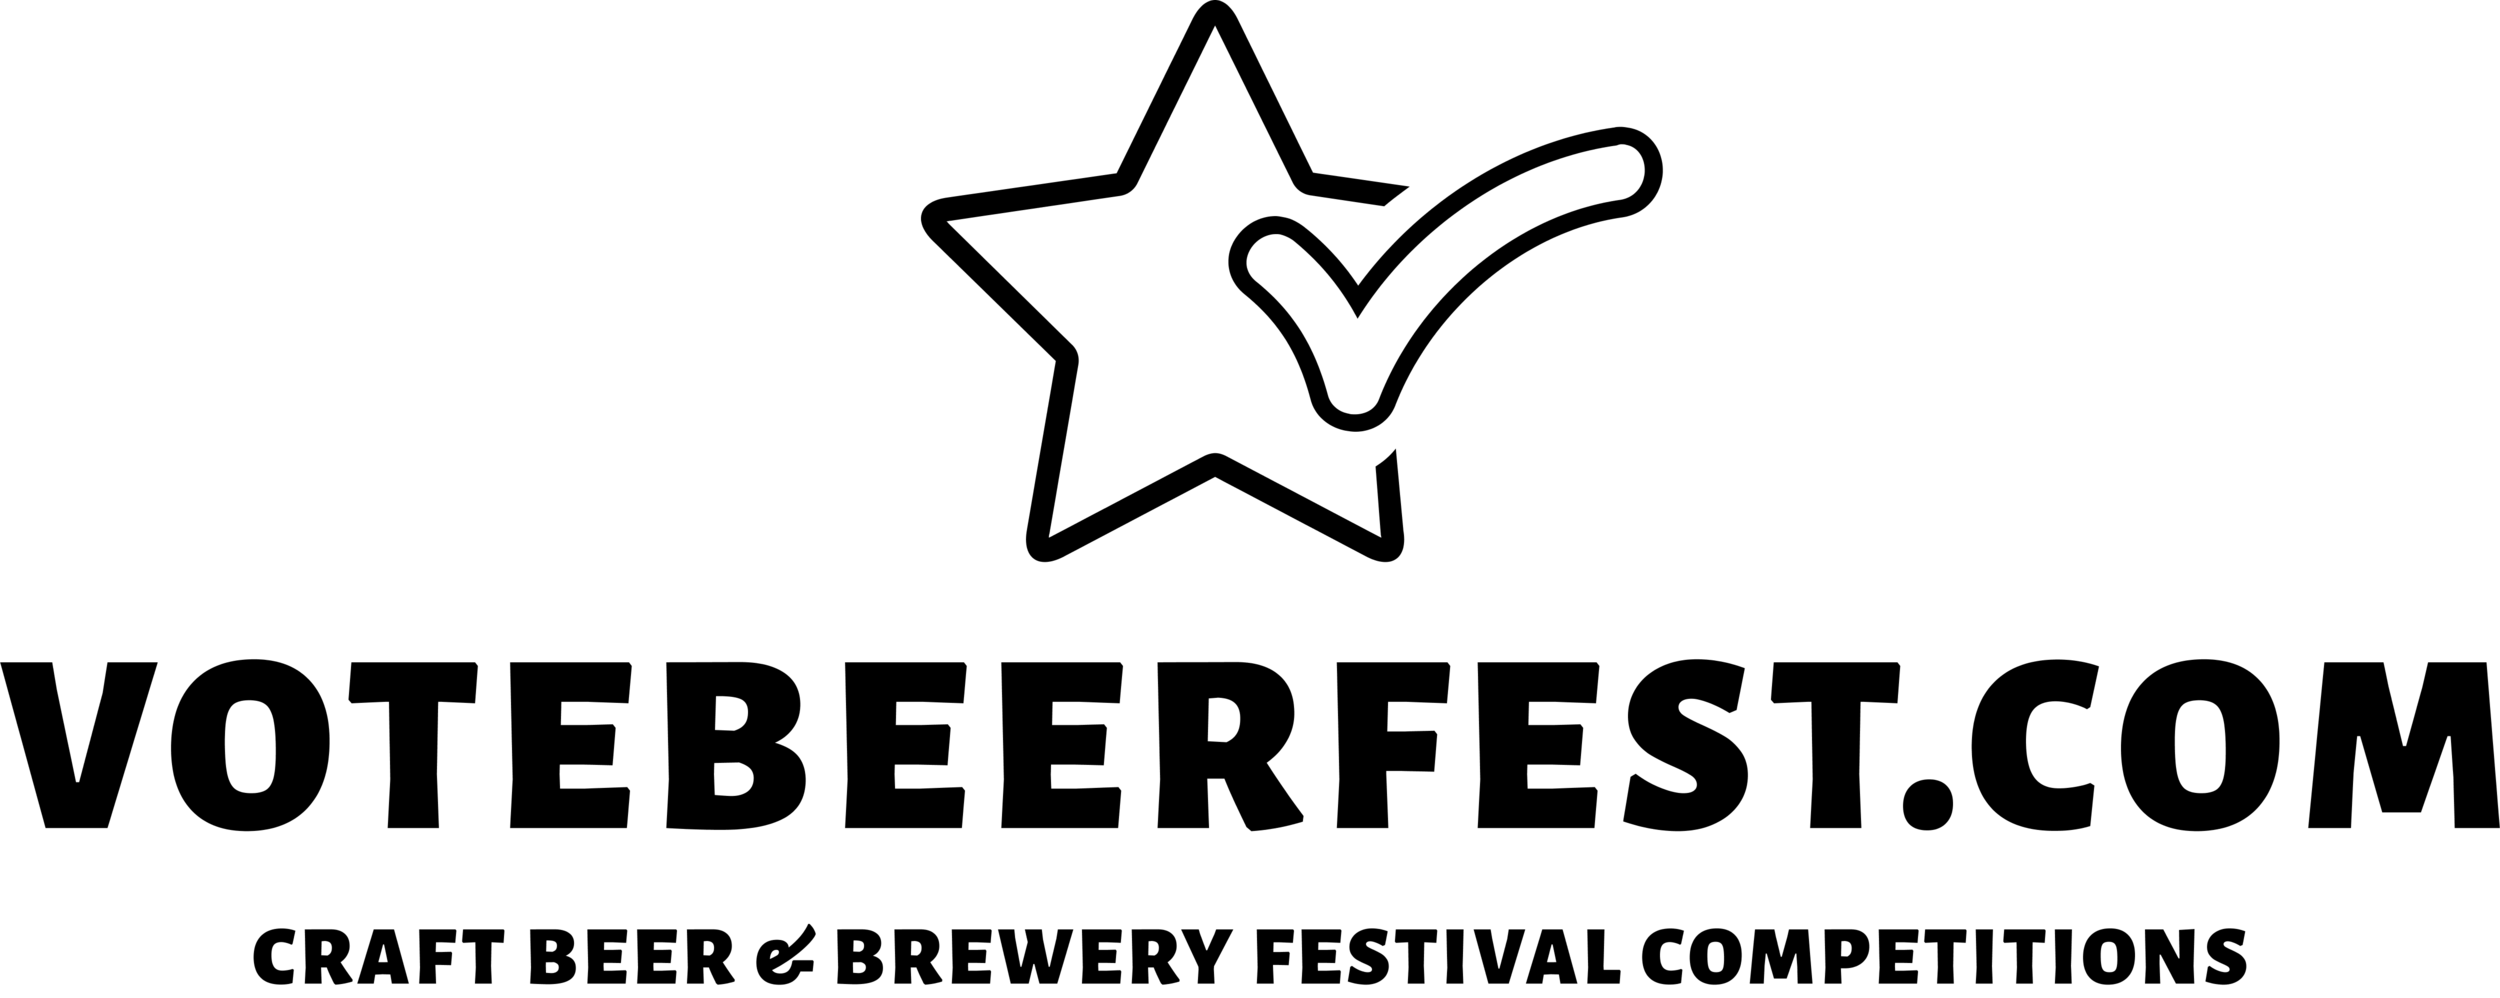 Black on Transparent (2) (1).png